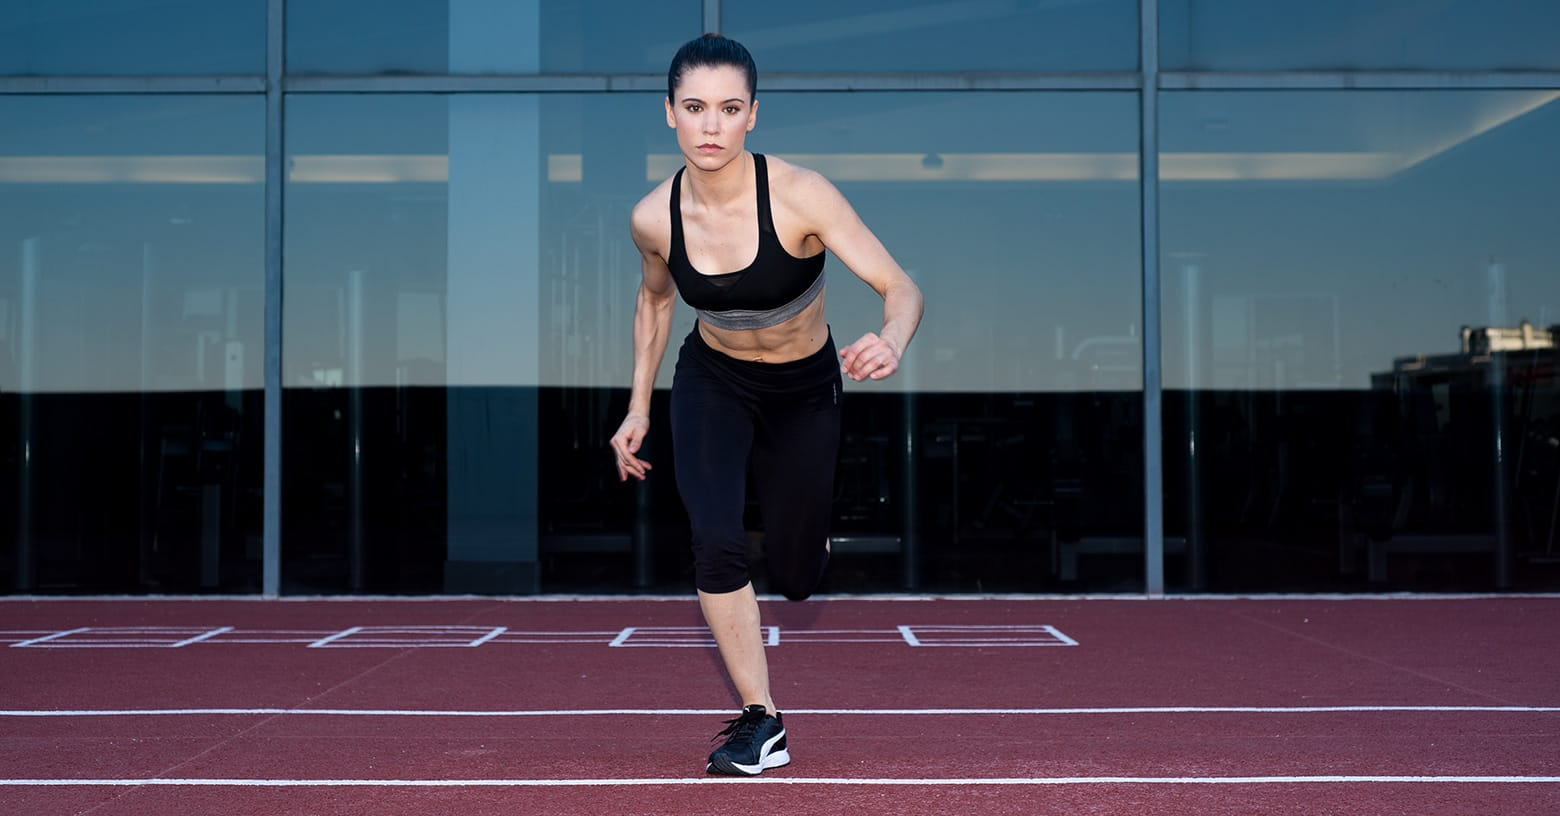 The Best Tips to Improve at Interval Training